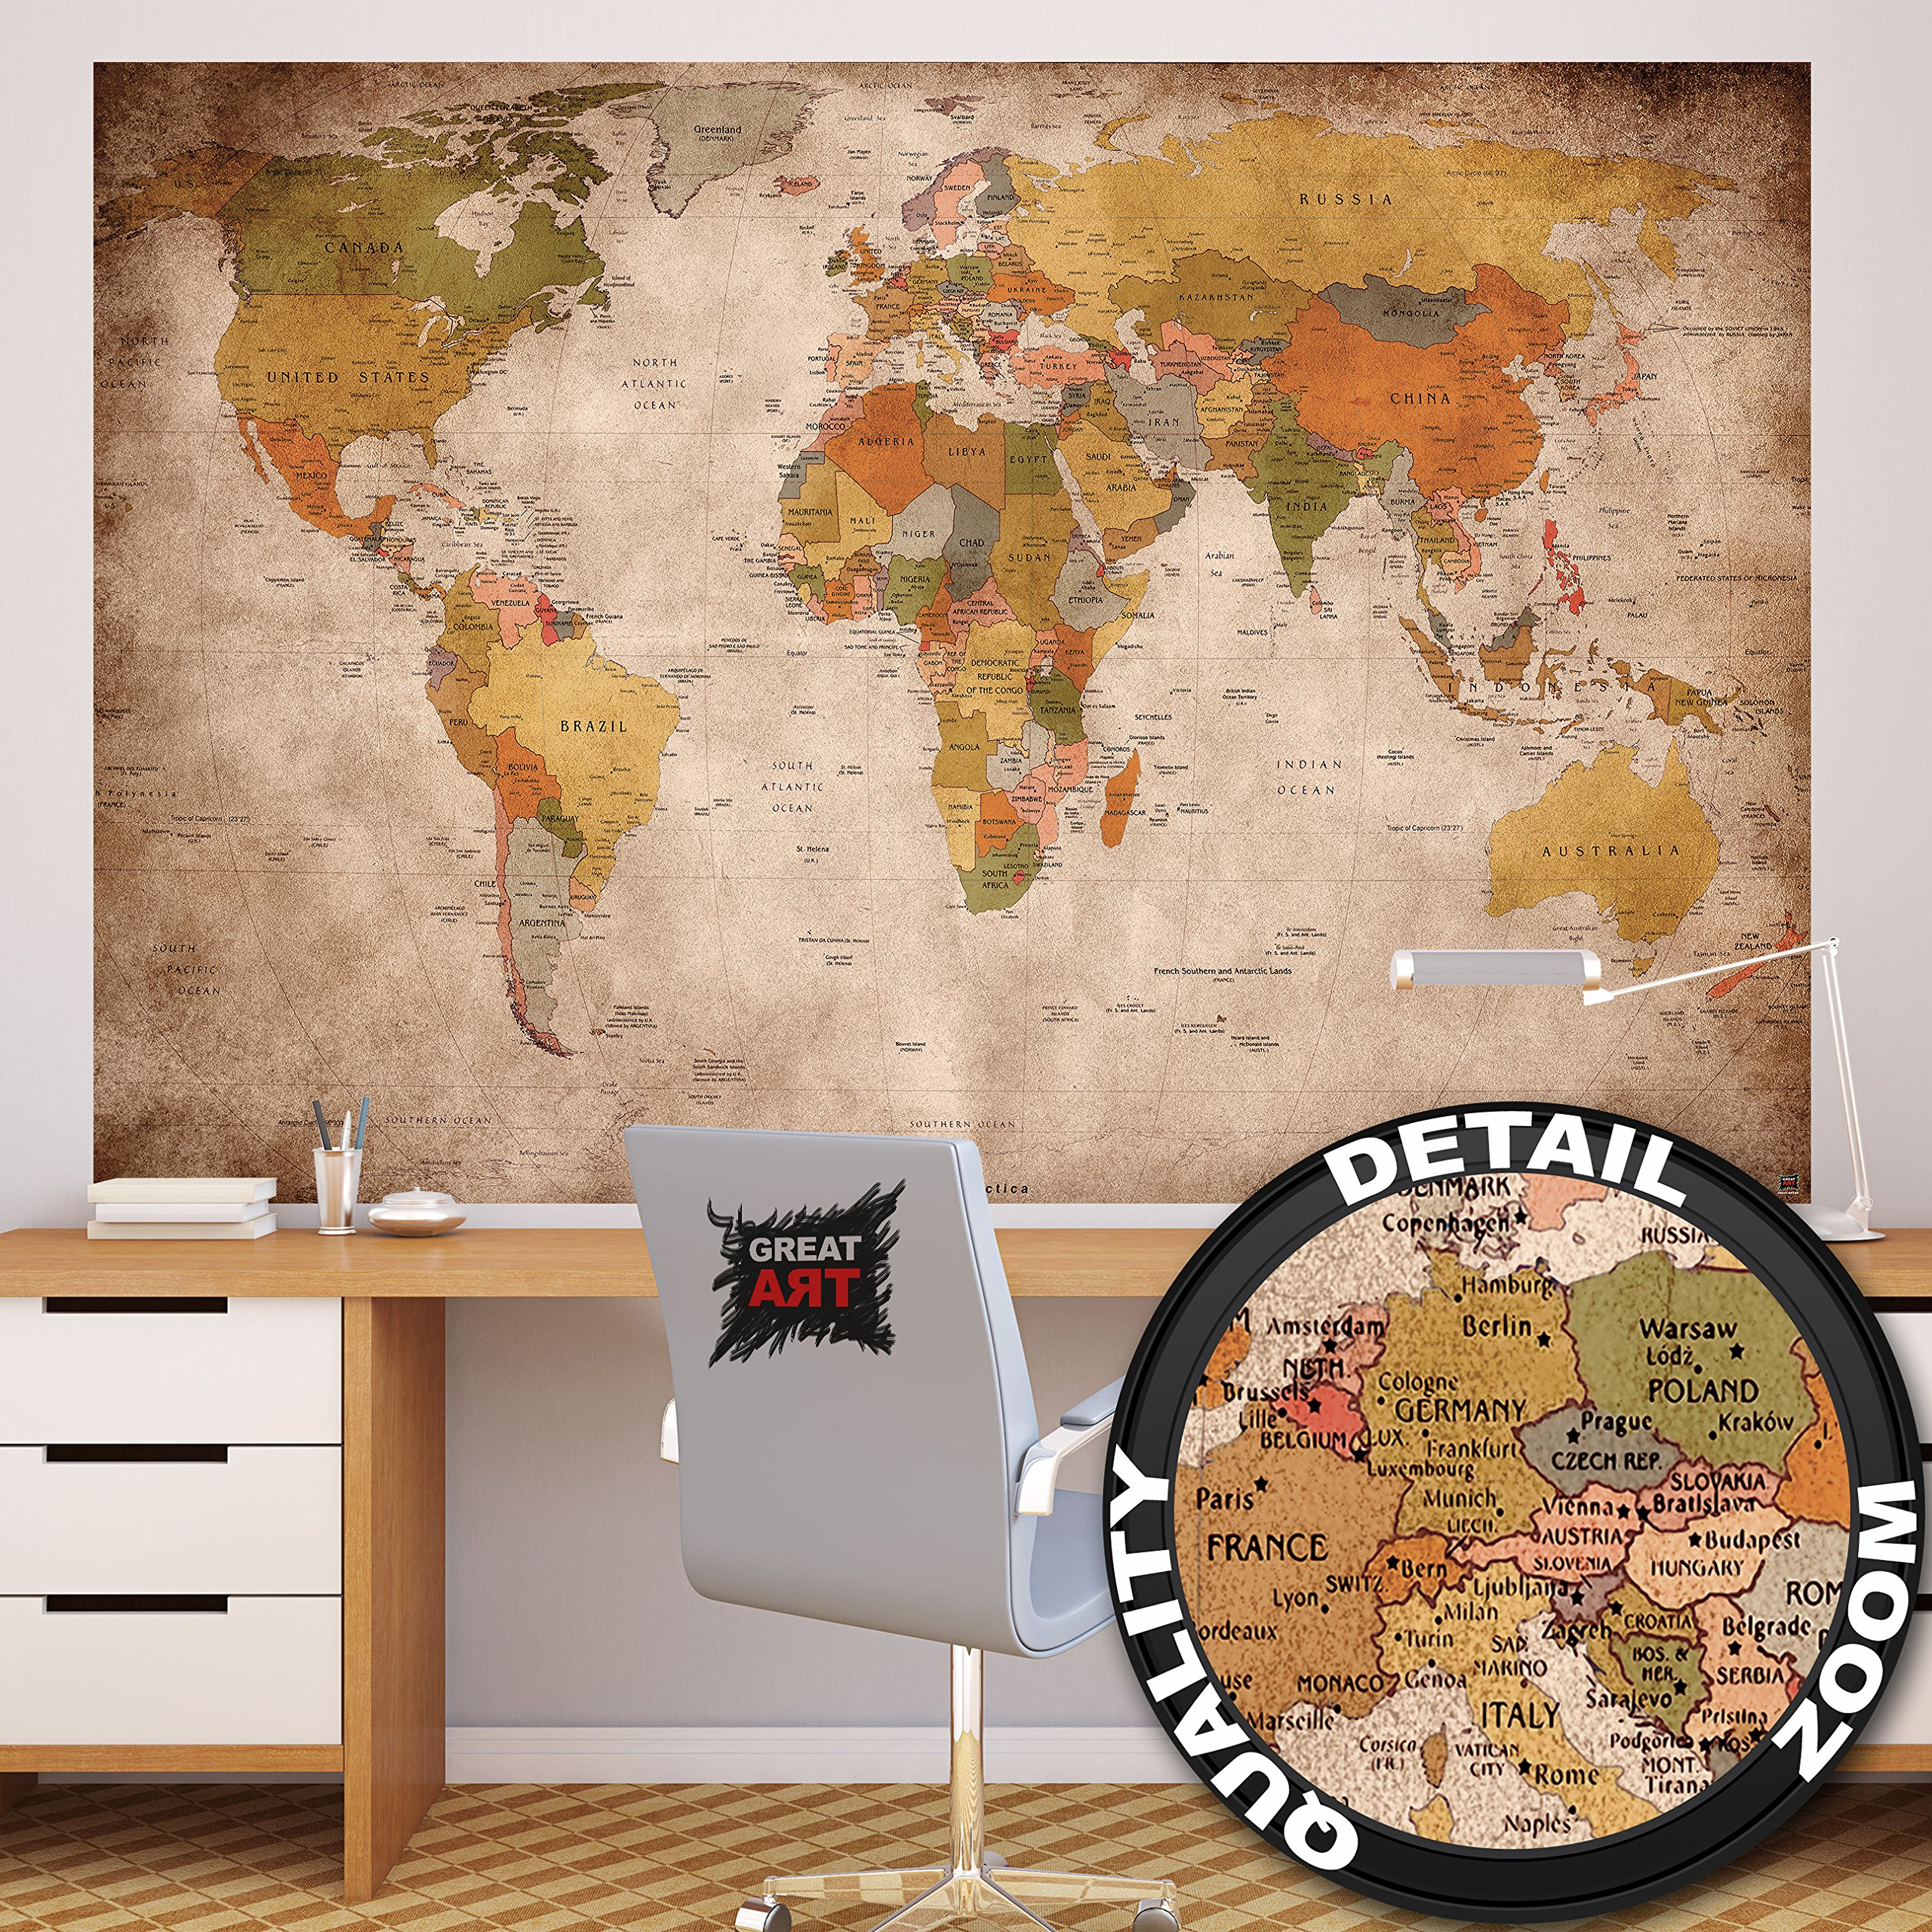 Map wallpaper amazon great art photo wallpaper vintage world map quirky retro wall picture xxl wall map 210 gumiabroncs Gallery